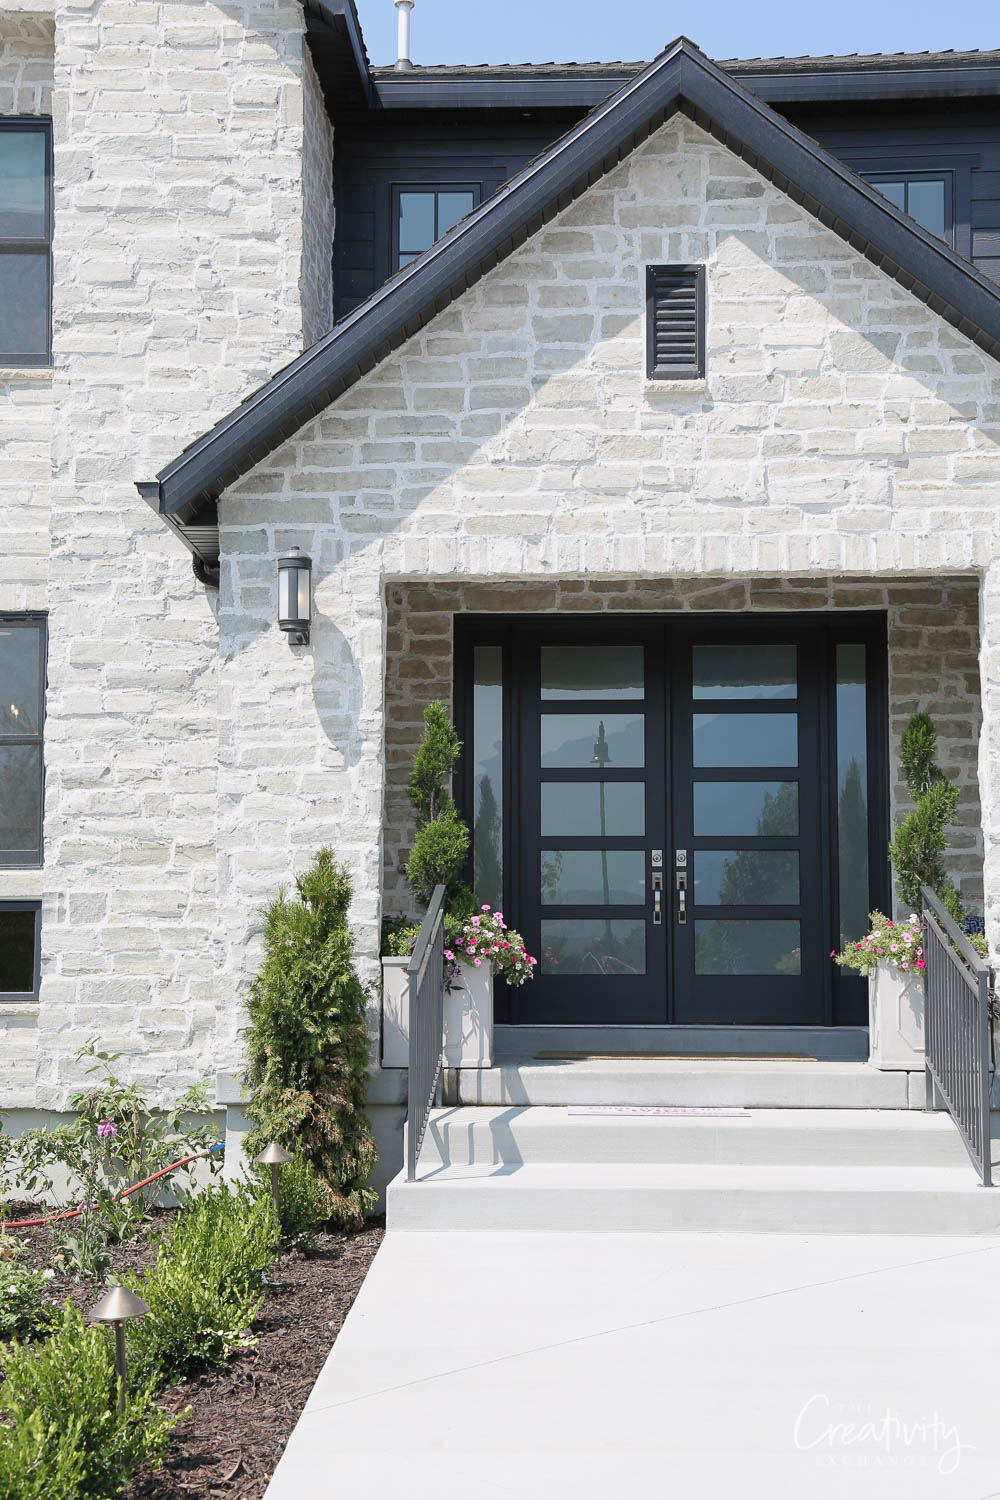 Modern double glass doors with privacy glass